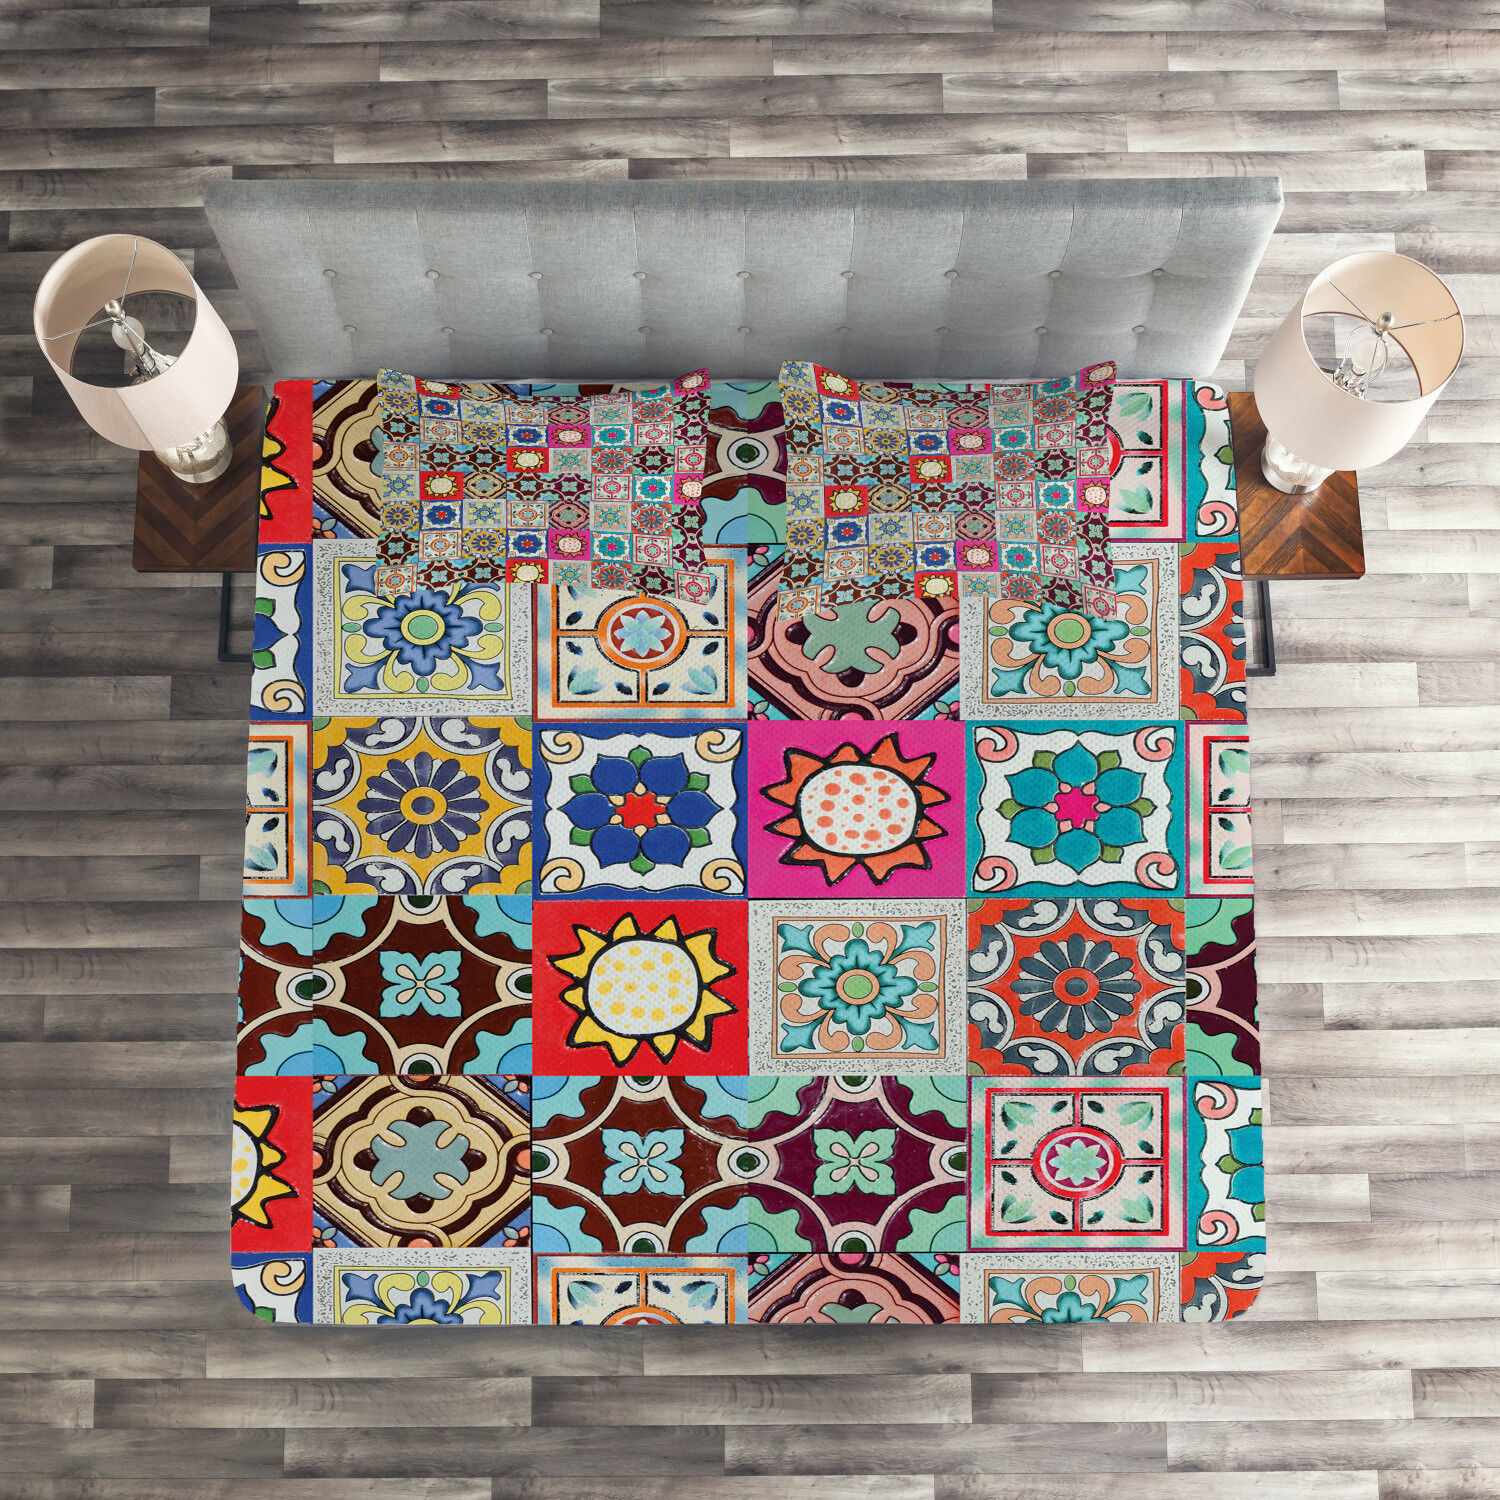 Farbeful Quilted Coverlet & Pillow Shams Set, Geometric Mosaic Tiles Print